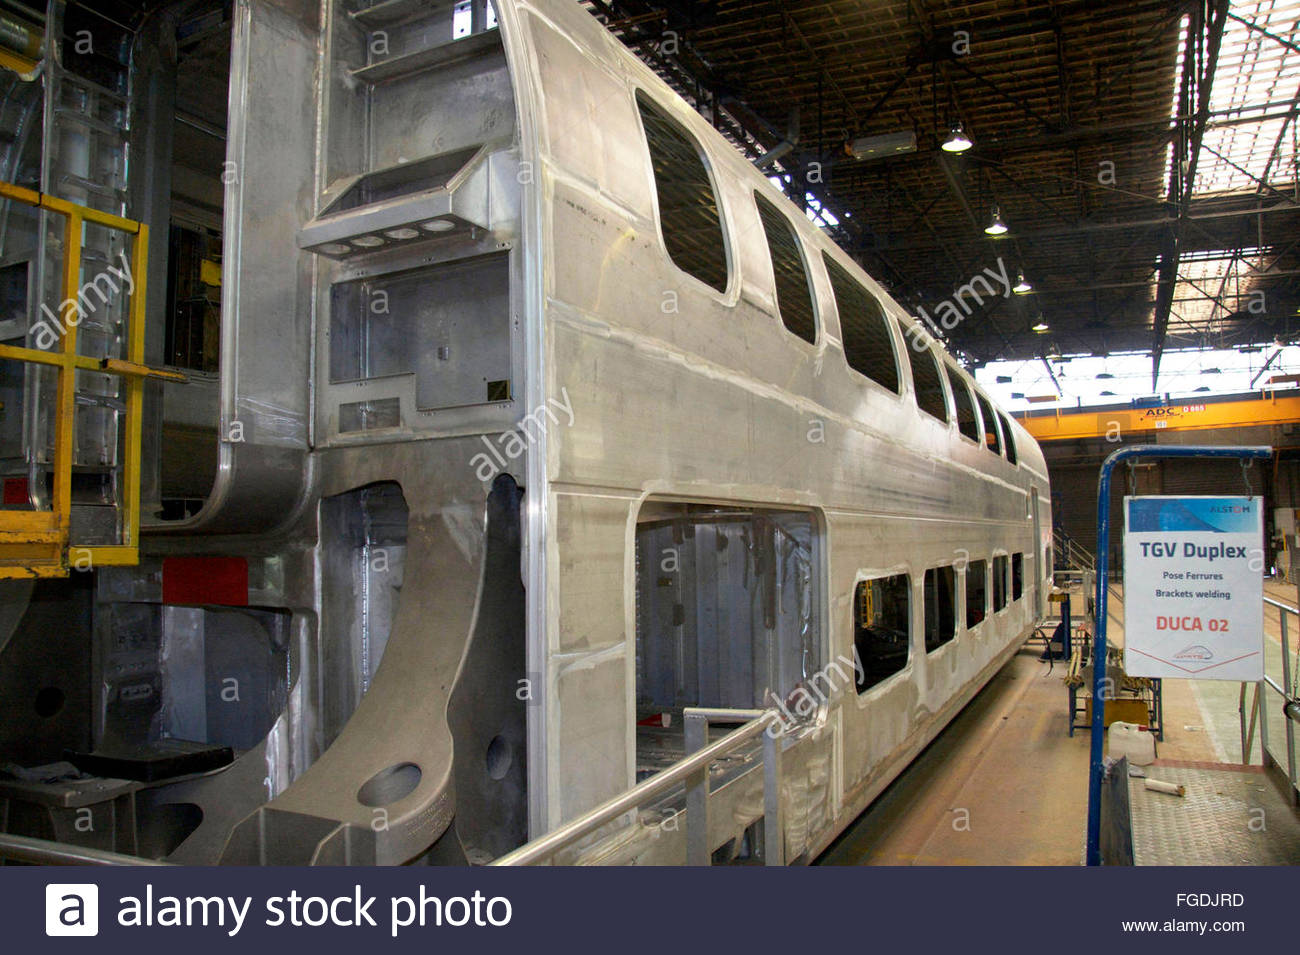 the carriage of a two floor tgv train alstom factory la rochelle stock photo 96186481 alamy. Black Bedroom Furniture Sets. Home Design Ideas